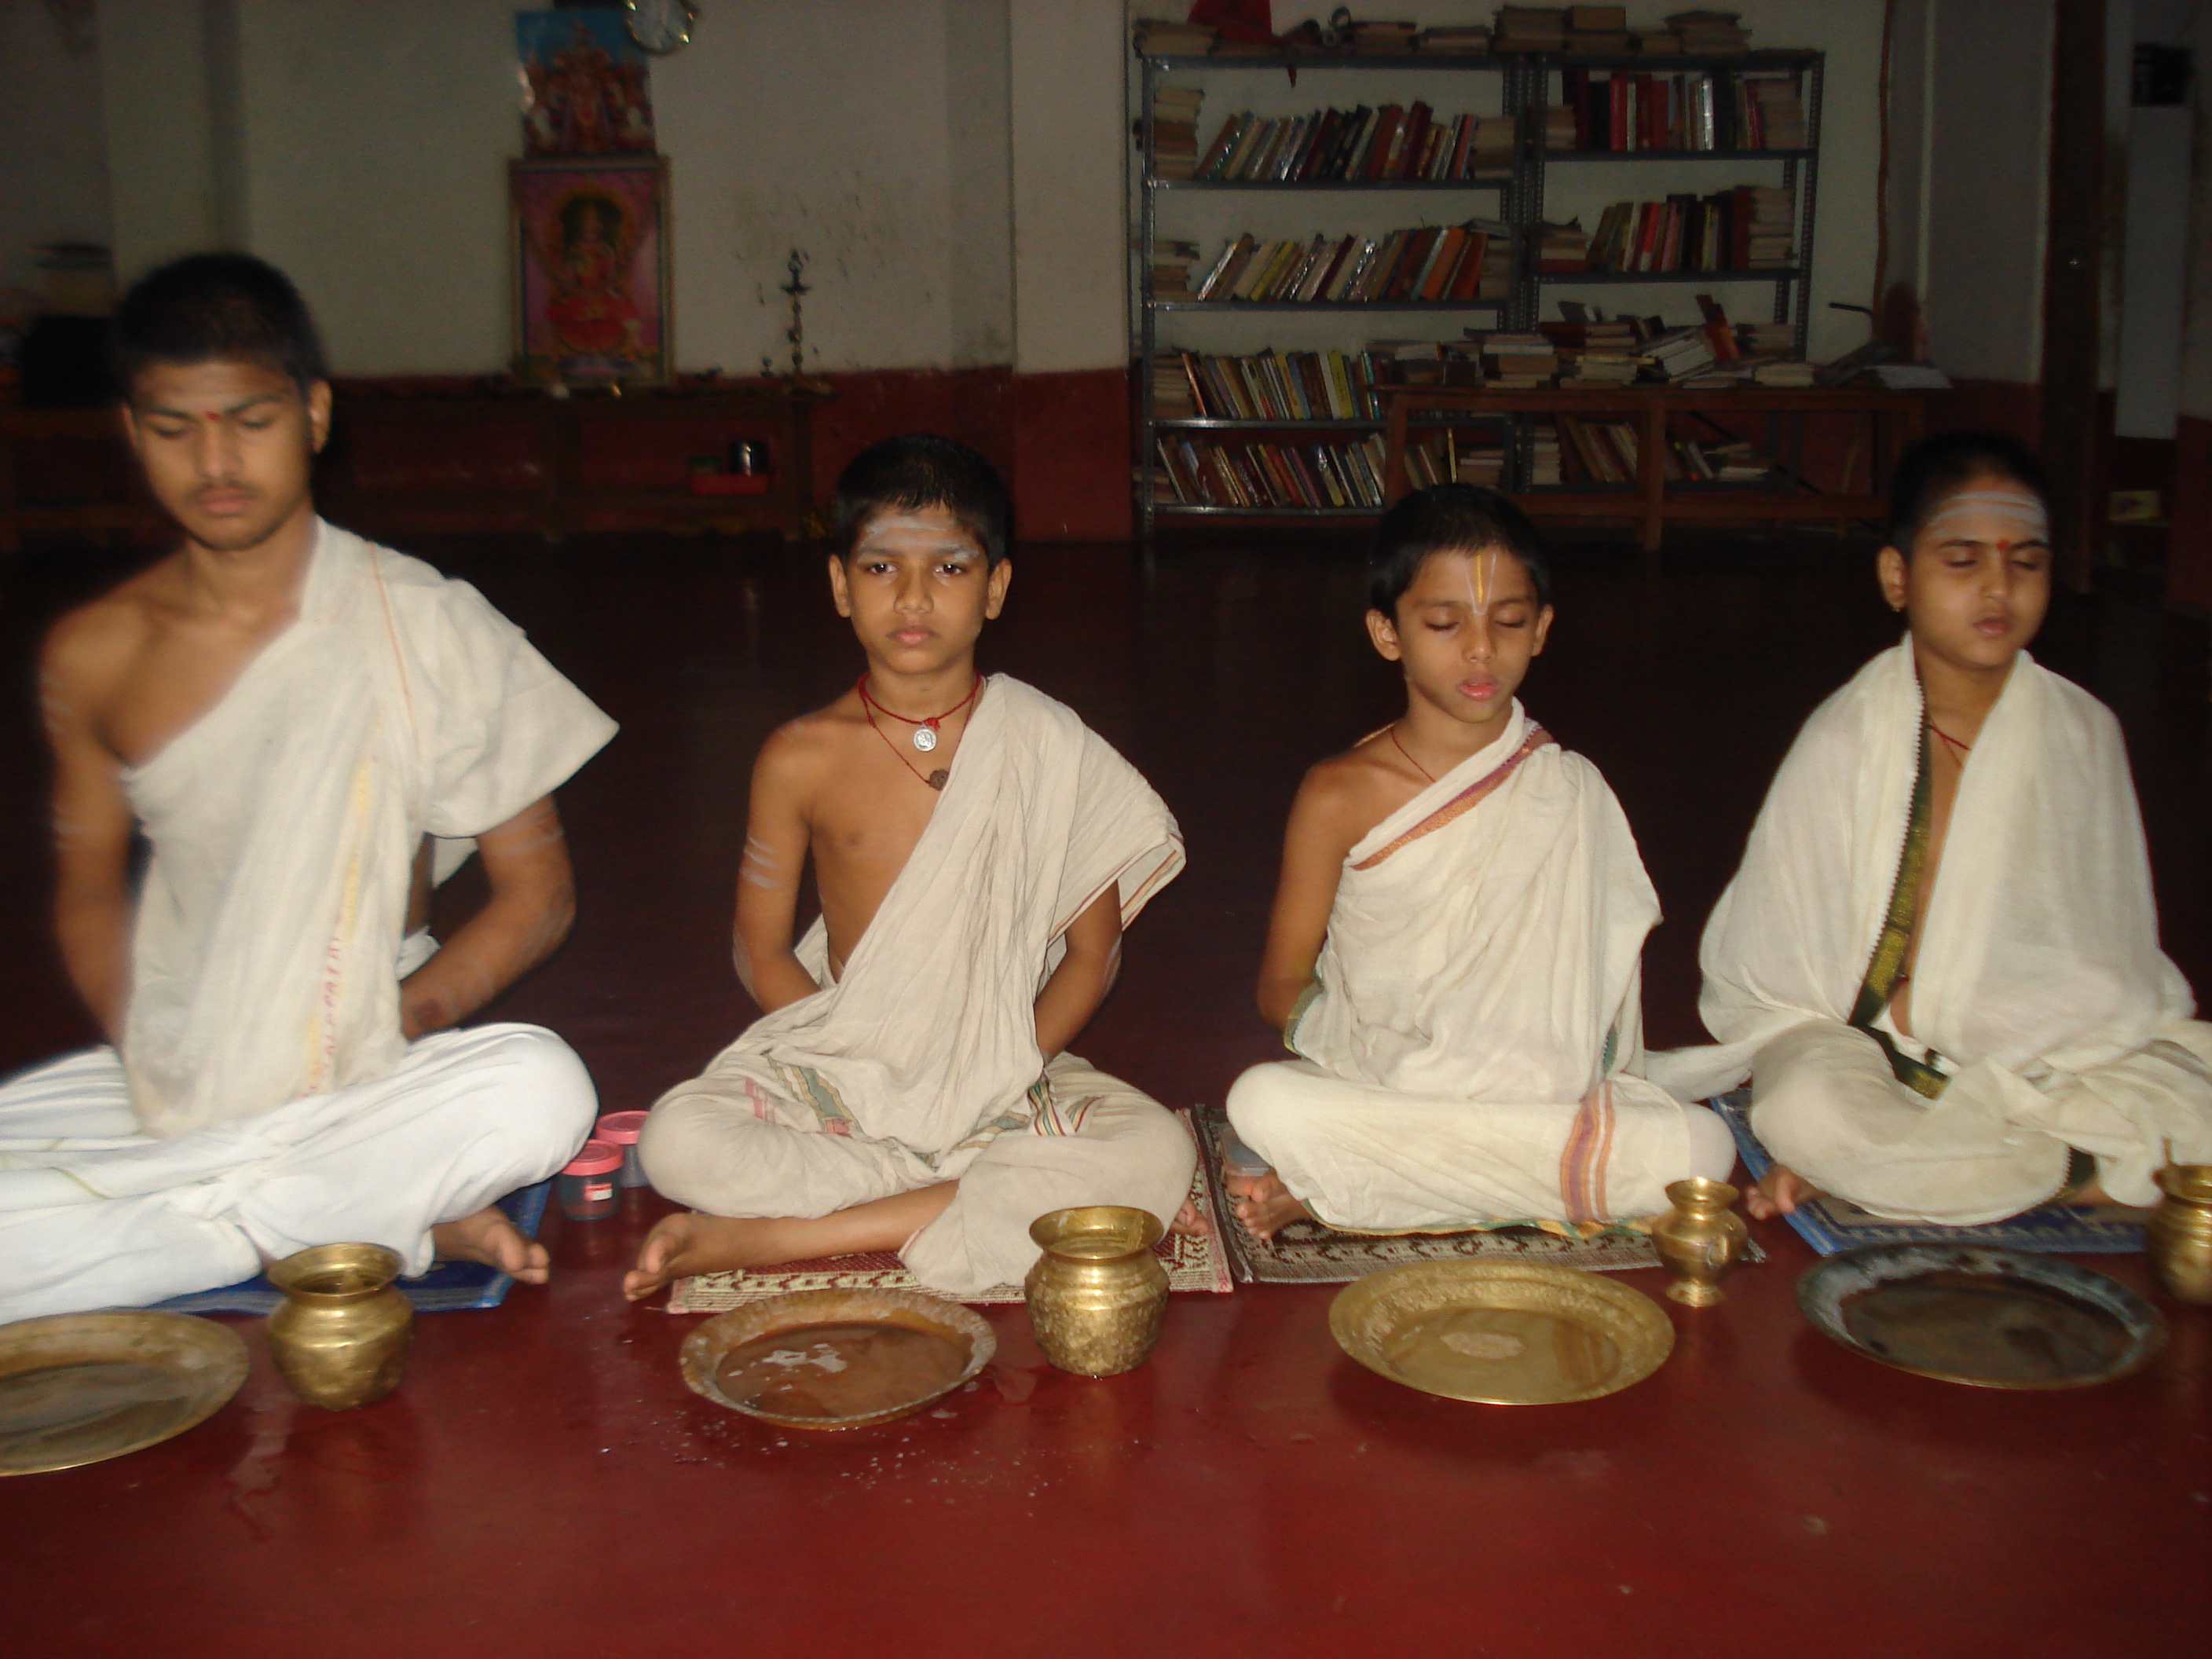 Veda pathashala students doing sandhya vandana...